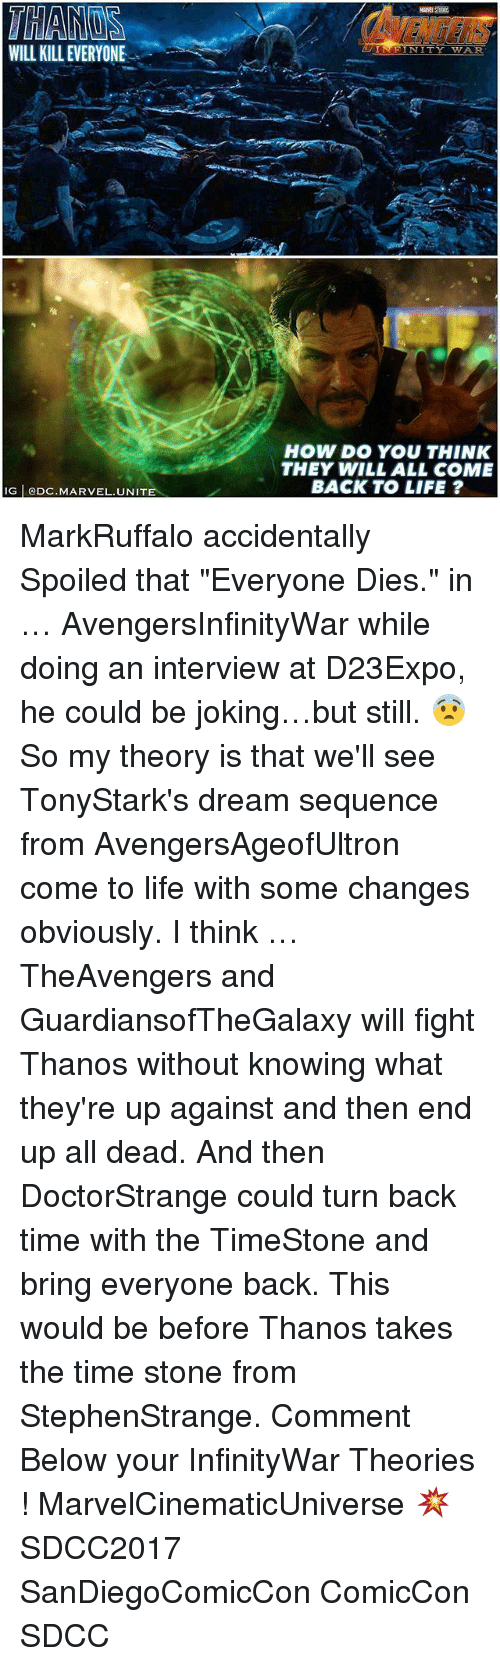 "stoning: WILL KILL EVERYONE  N I  HOW DO YOU THINK  THEY WILL ALL COME  BACK TO LIFE ?  G ODC.MARVEL.UNITE MarkRuffalo accidentally Spoiled that ""Everyone Dies."" in … AvengersInfinityWar while doing an interview at D23Expo, he could be joking…but still. 😨 So my theory is that we'll see TonyStark's dream sequence from AvengersAgeofUltron come to life with some changes obviously. I think … TheAvengers and GuardiansofTheGalaxy will fight Thanos without knowing what they're up against and then end up all dead. And then DoctorStrange could turn back time with the TimeStone and bring everyone back. This would be before Thanos takes the time stone from StephenStrange. Comment Below your InfinityWar Theories ! MarvelCinematicUniverse 💥 SDCC2017 SanDiegoComicCon ComicCon SDCC"